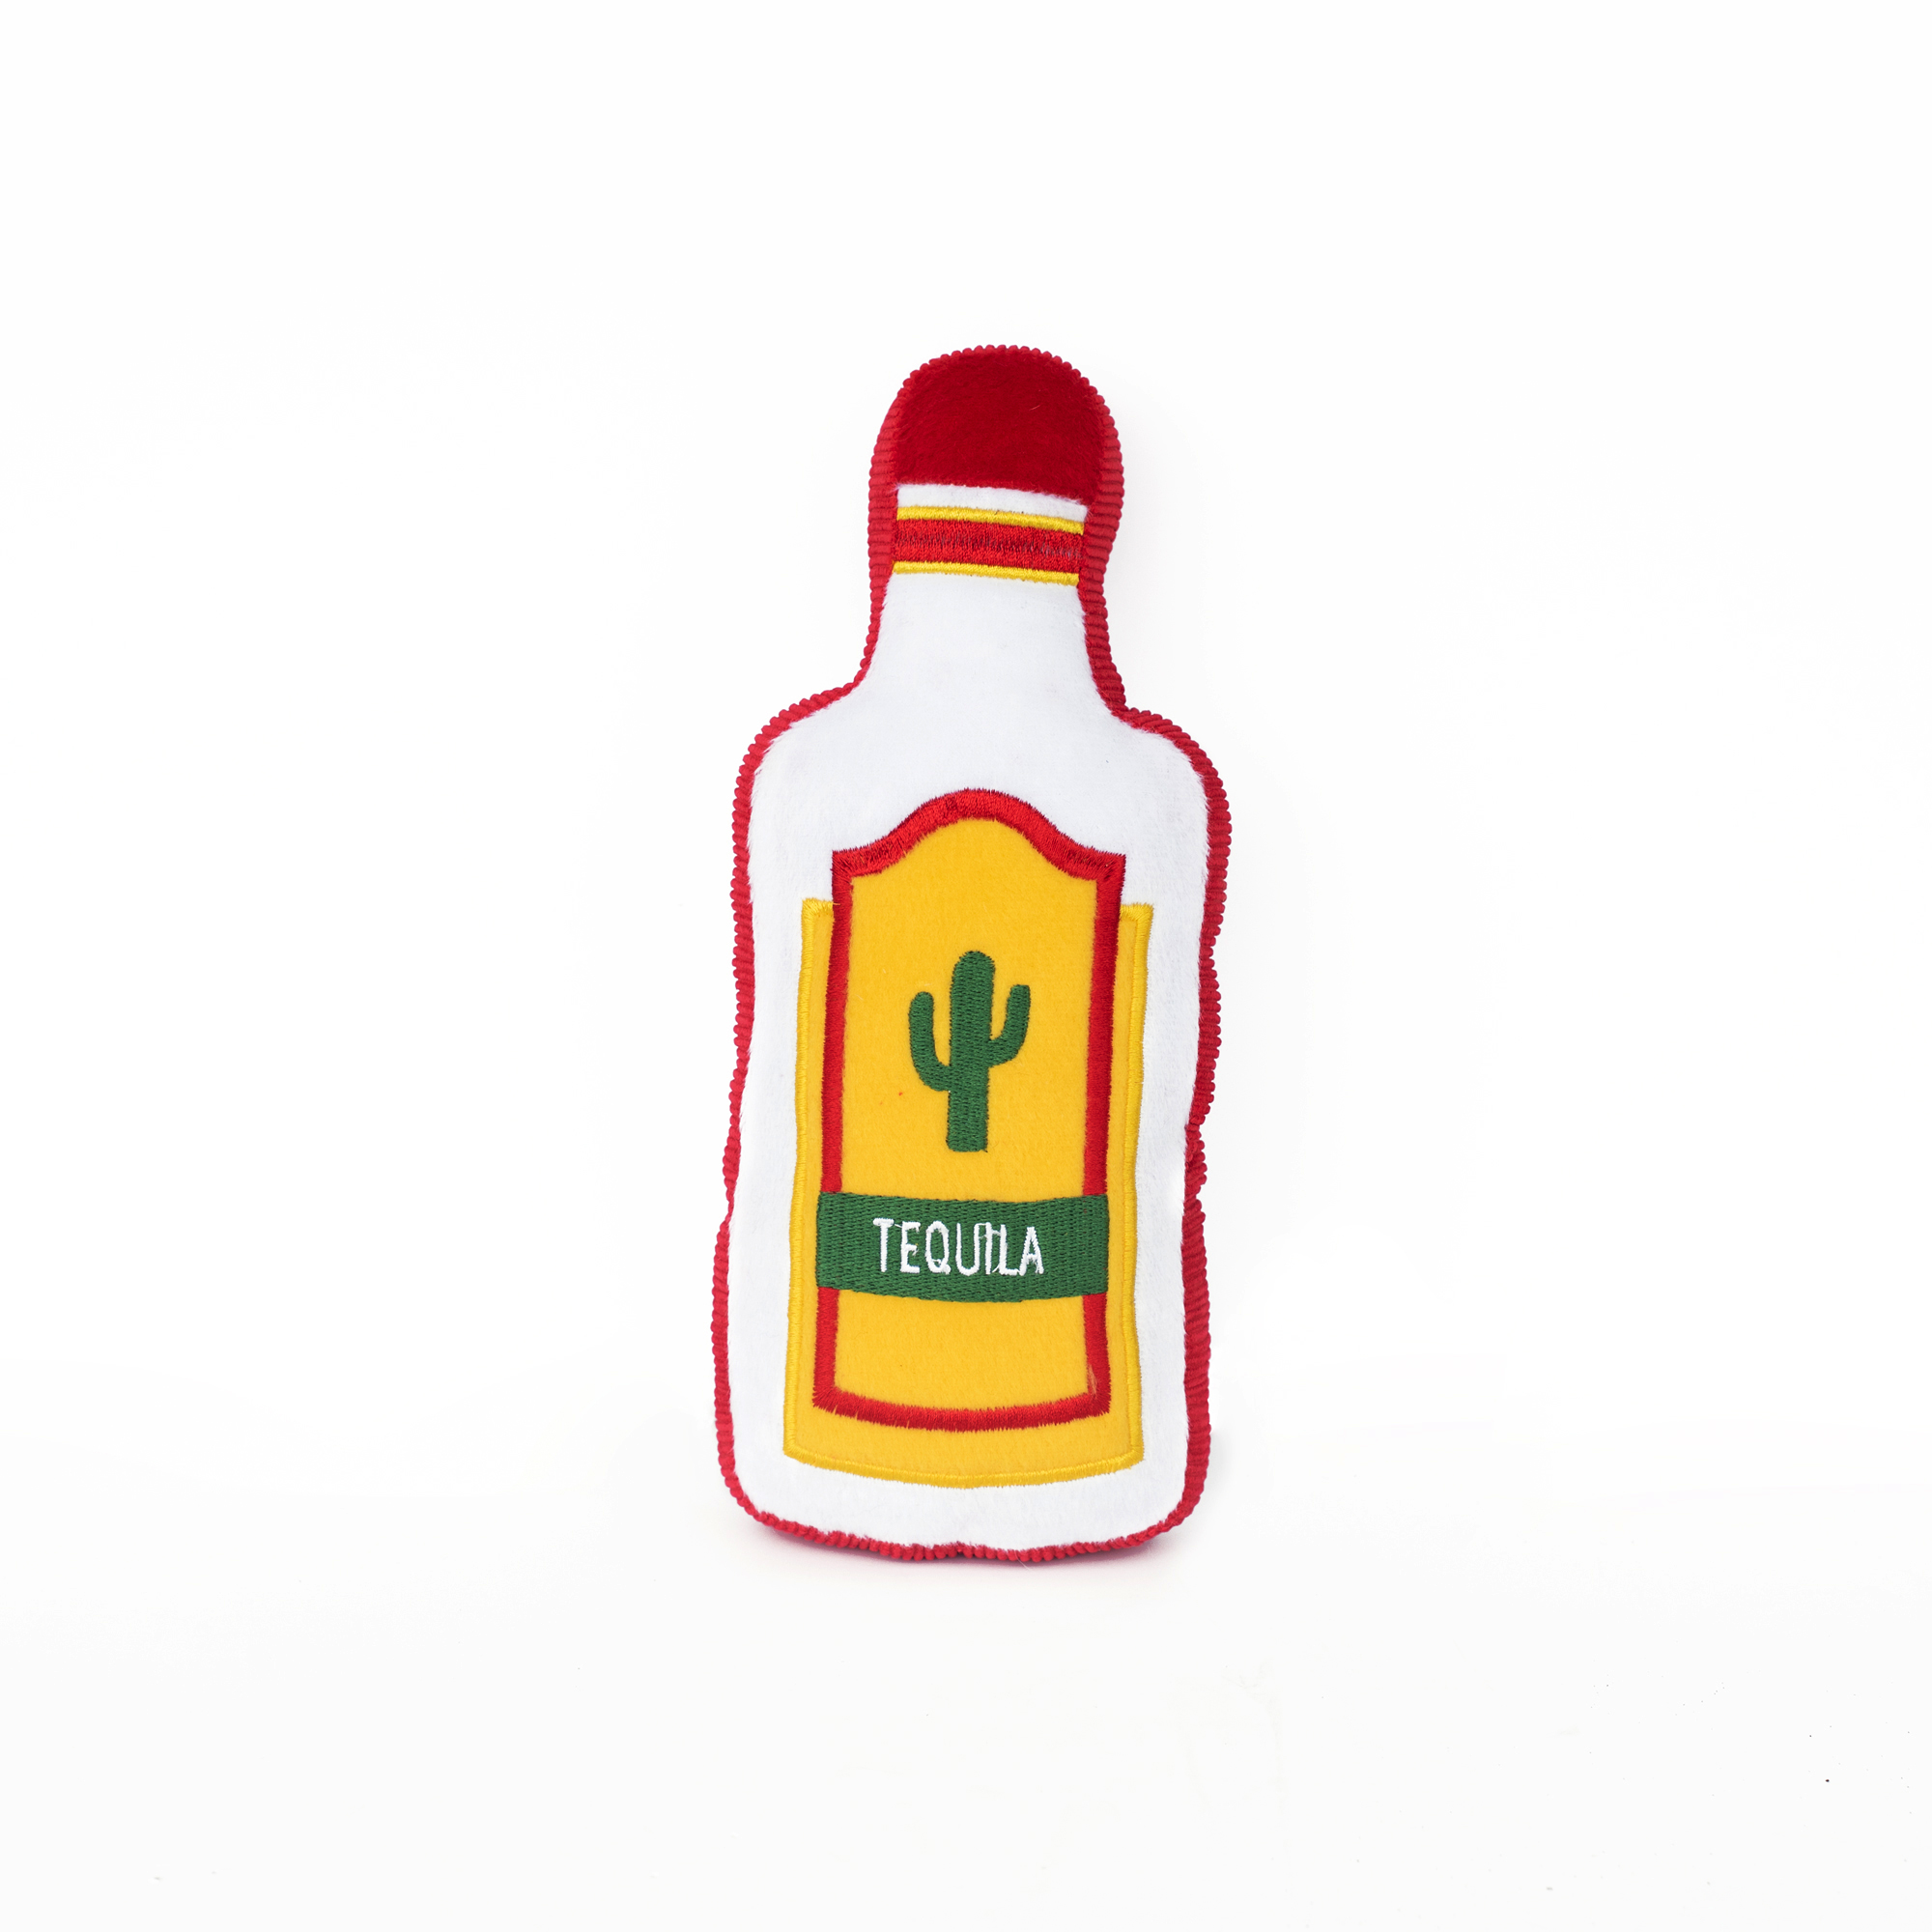 Tequila alcohol plush squeak toy